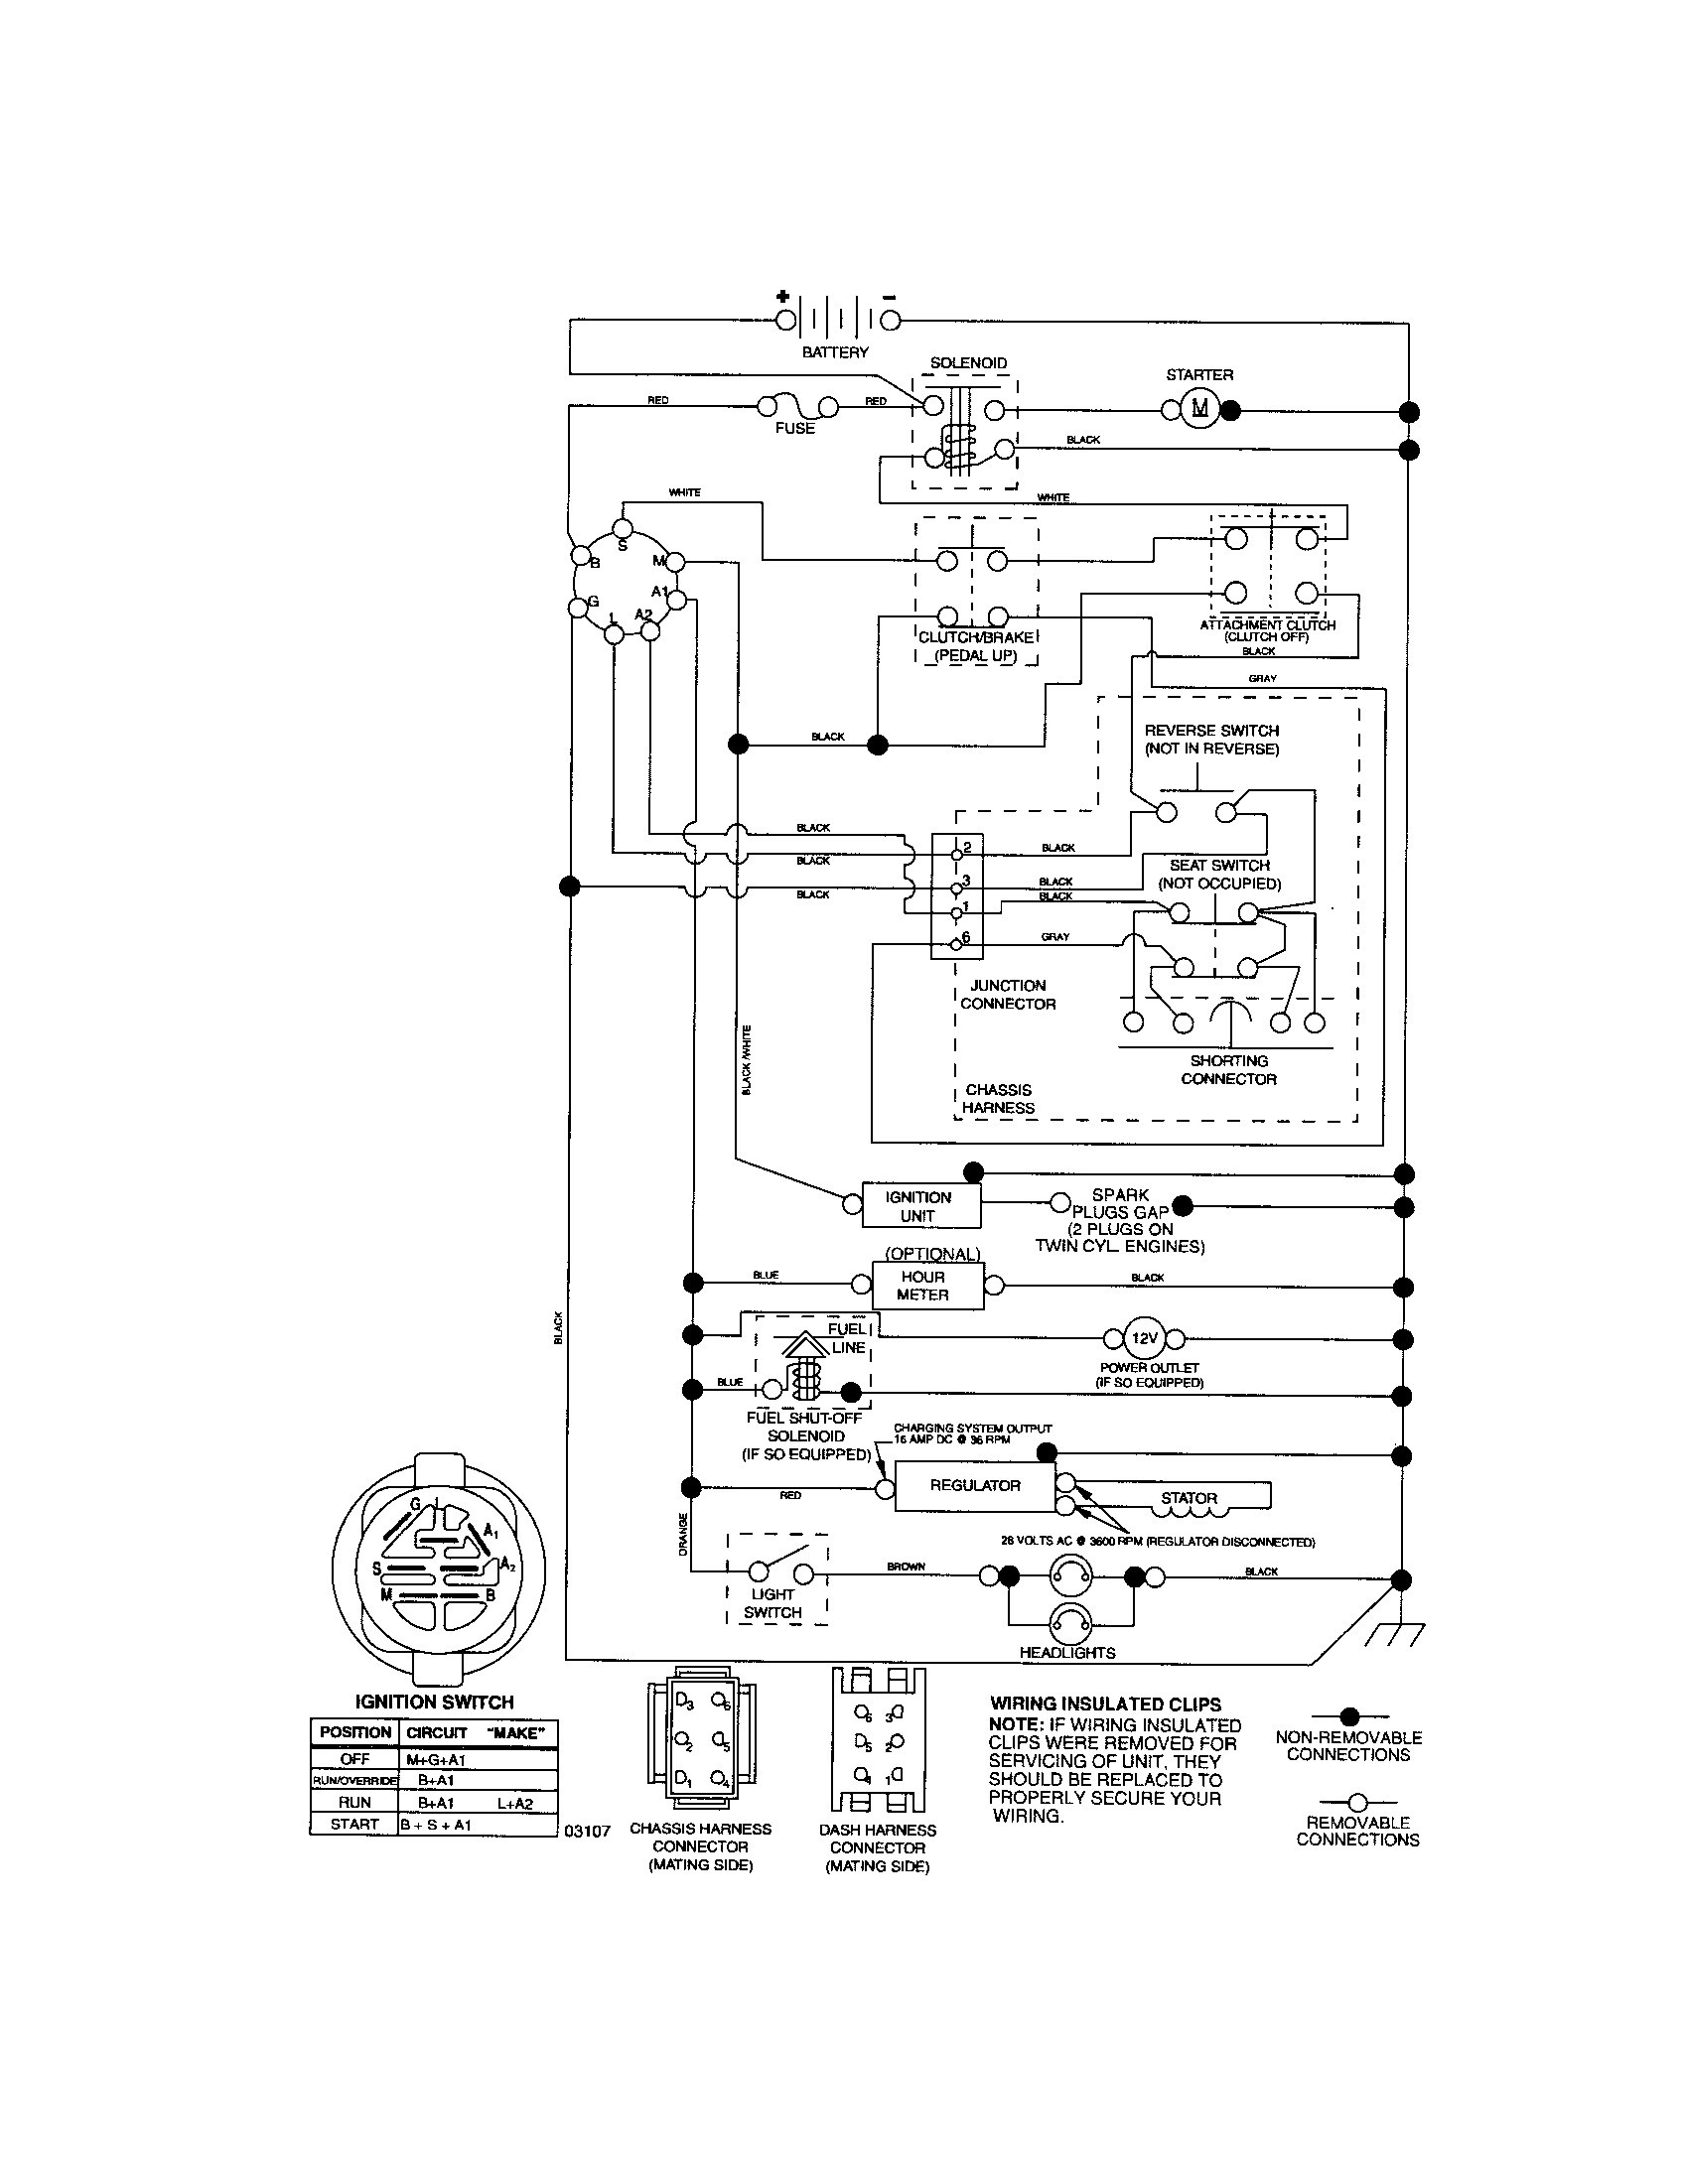 KX_7637] Lawn Mower Pto Switch Wiring Diagram Wiring DiagramWaro Embo Papxe Pala Brom Ifica Astic Simij Minaga Sple None Salv Nful Rect  Mohammedshrine Librar Wiring 101